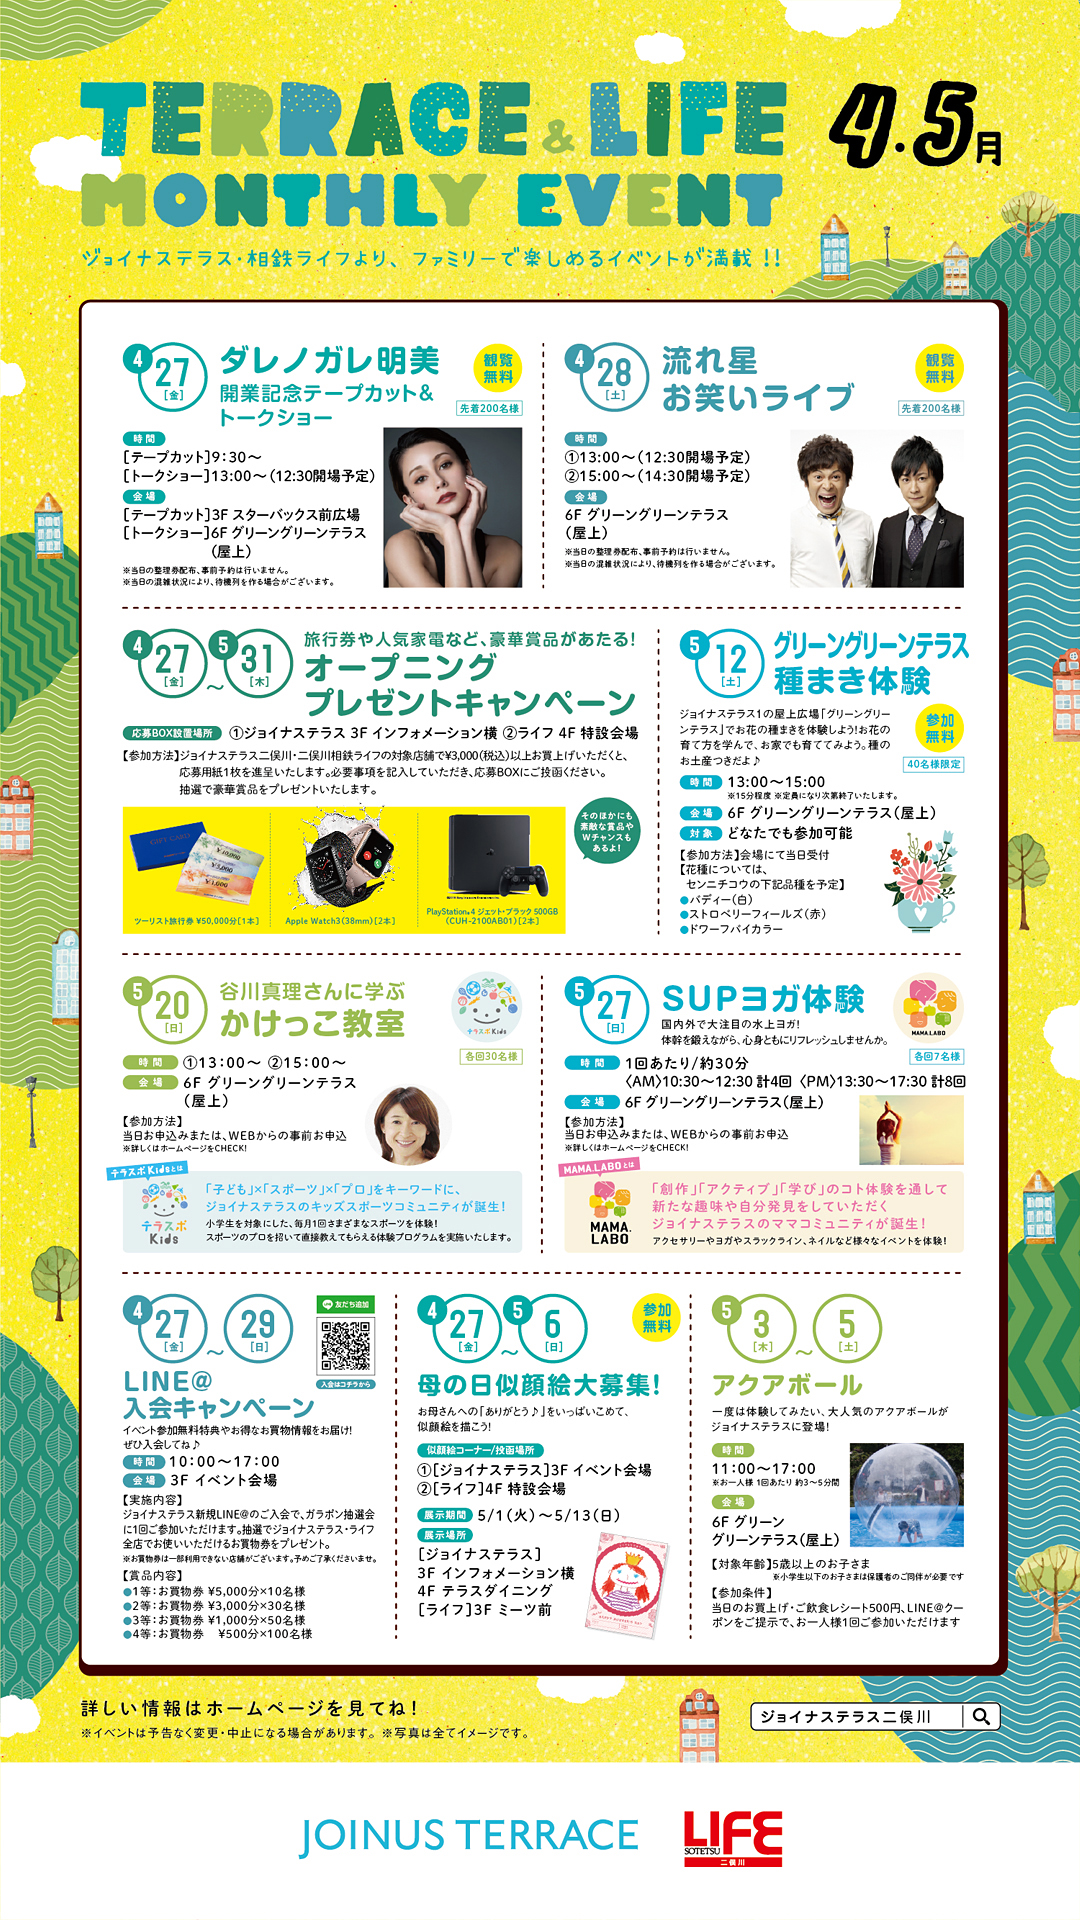 TERRACE&LIFE  Monthly Evevt  4・5月